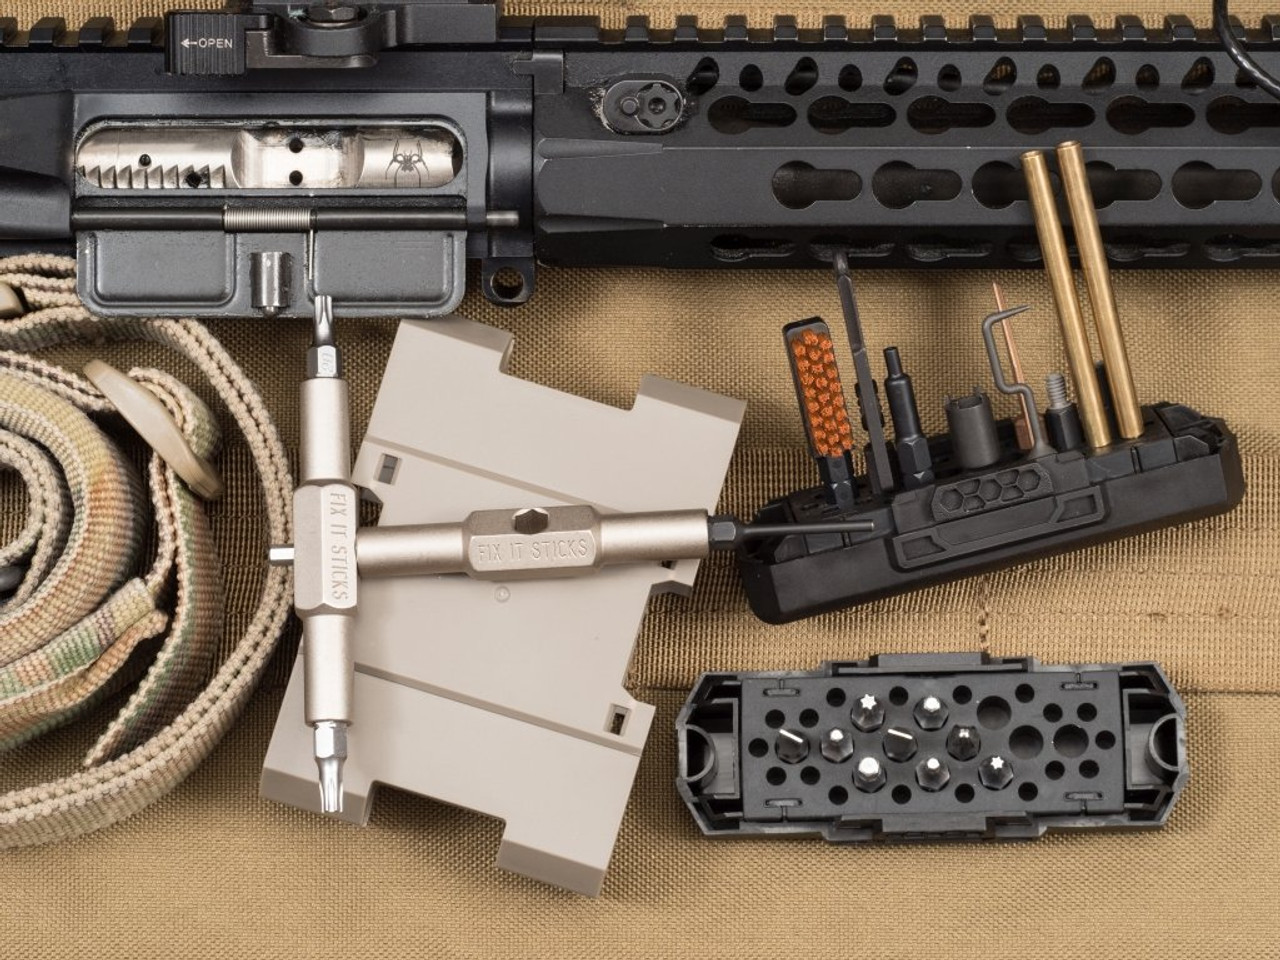 Fix it Sticks- AR15  Tool Kit